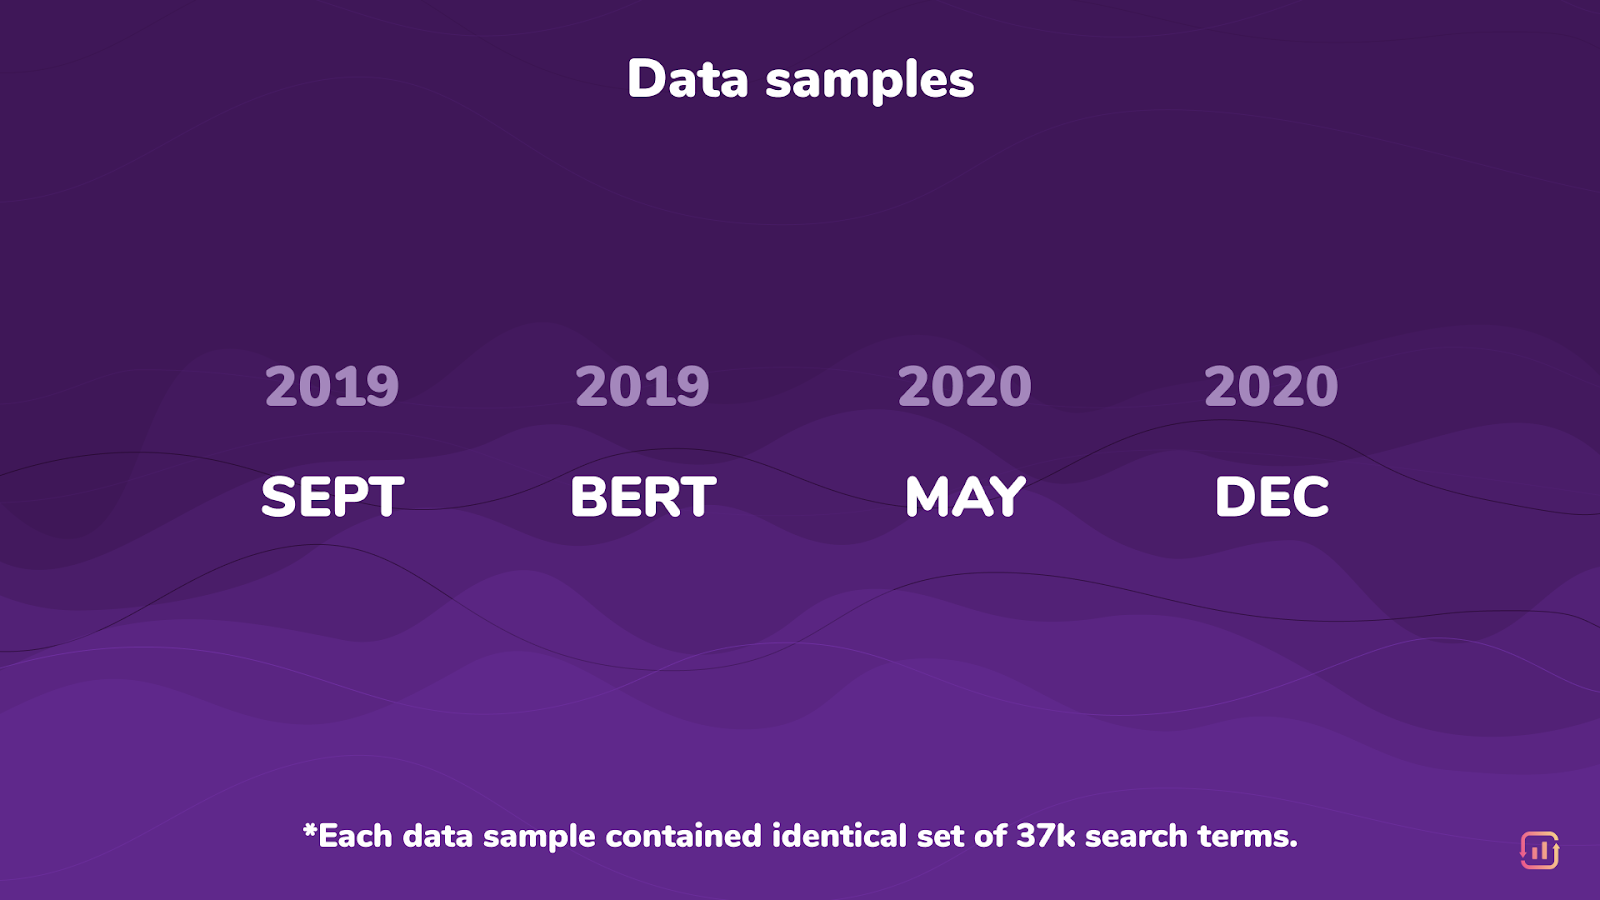 data samples for surfer big data search intent case study (from September 2019 to December 2020)b